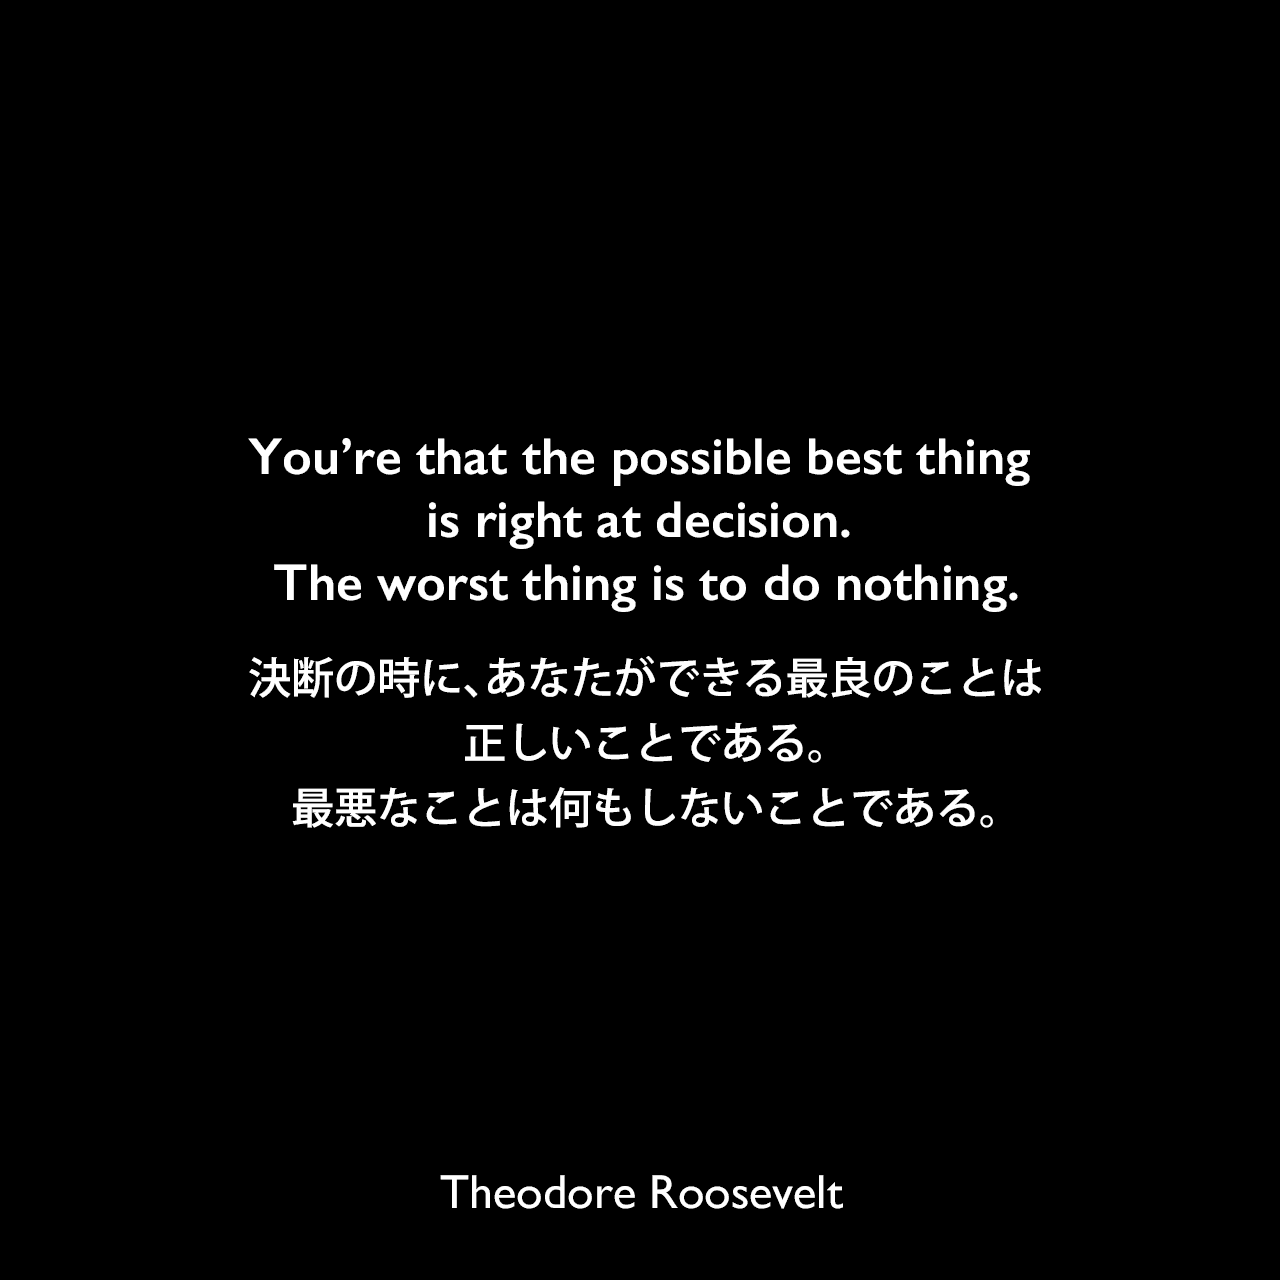 You're that the possible best thing is right at decision. The worst thing is to do nothing.決断の時に、あなたができる最良のことは、正しいことである。最悪なことは何もしないことである。Theodore Roosevelt